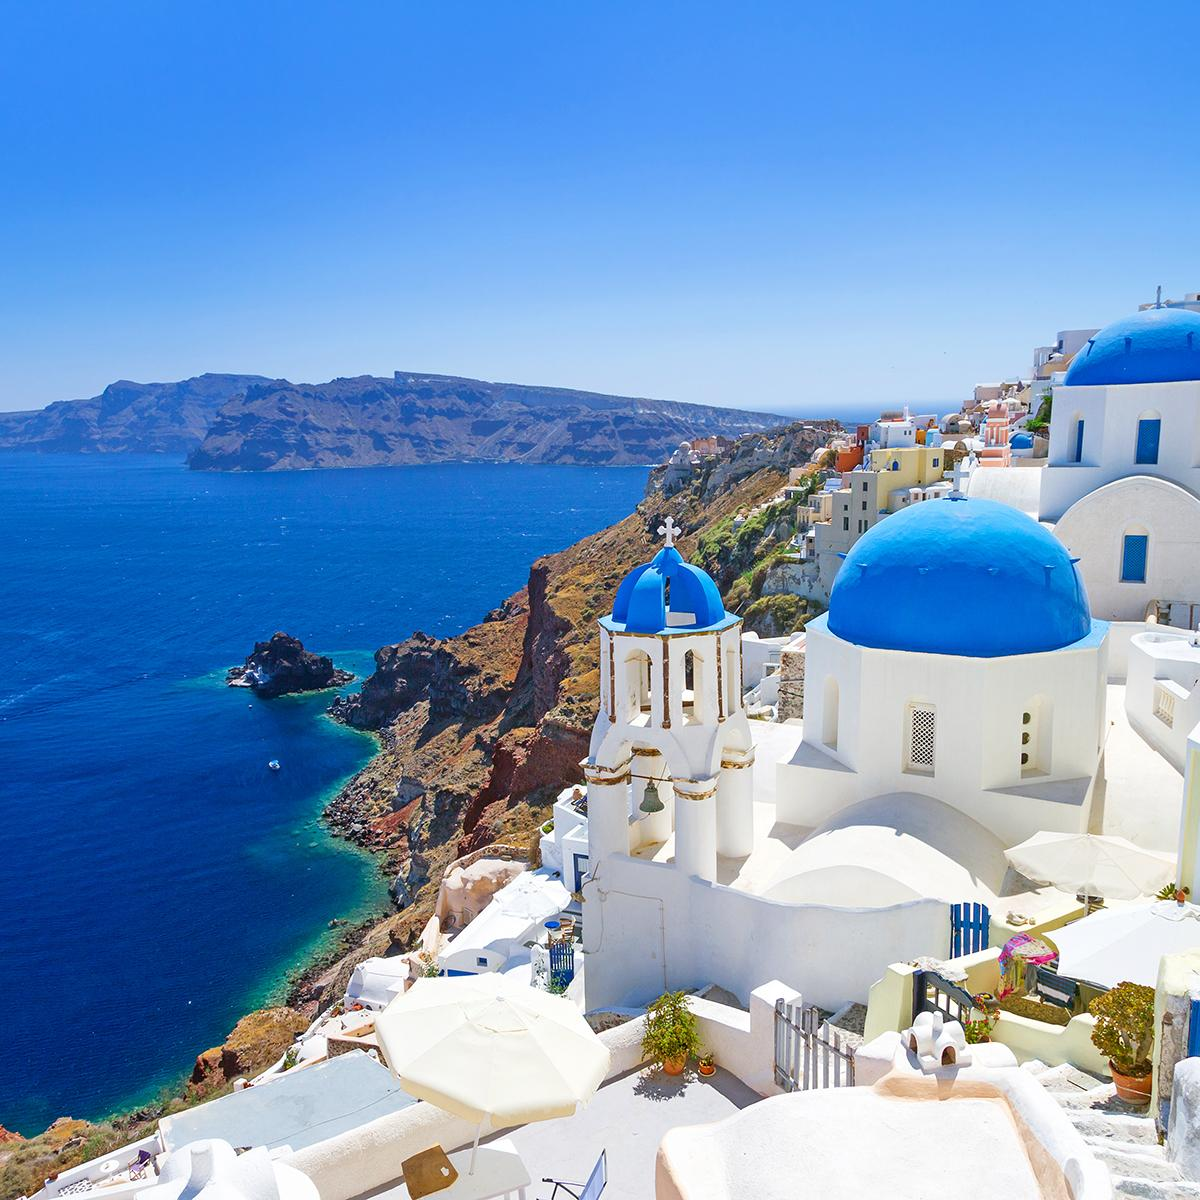 Breathtaking views of Greece - Insight Vacations tours can take you there